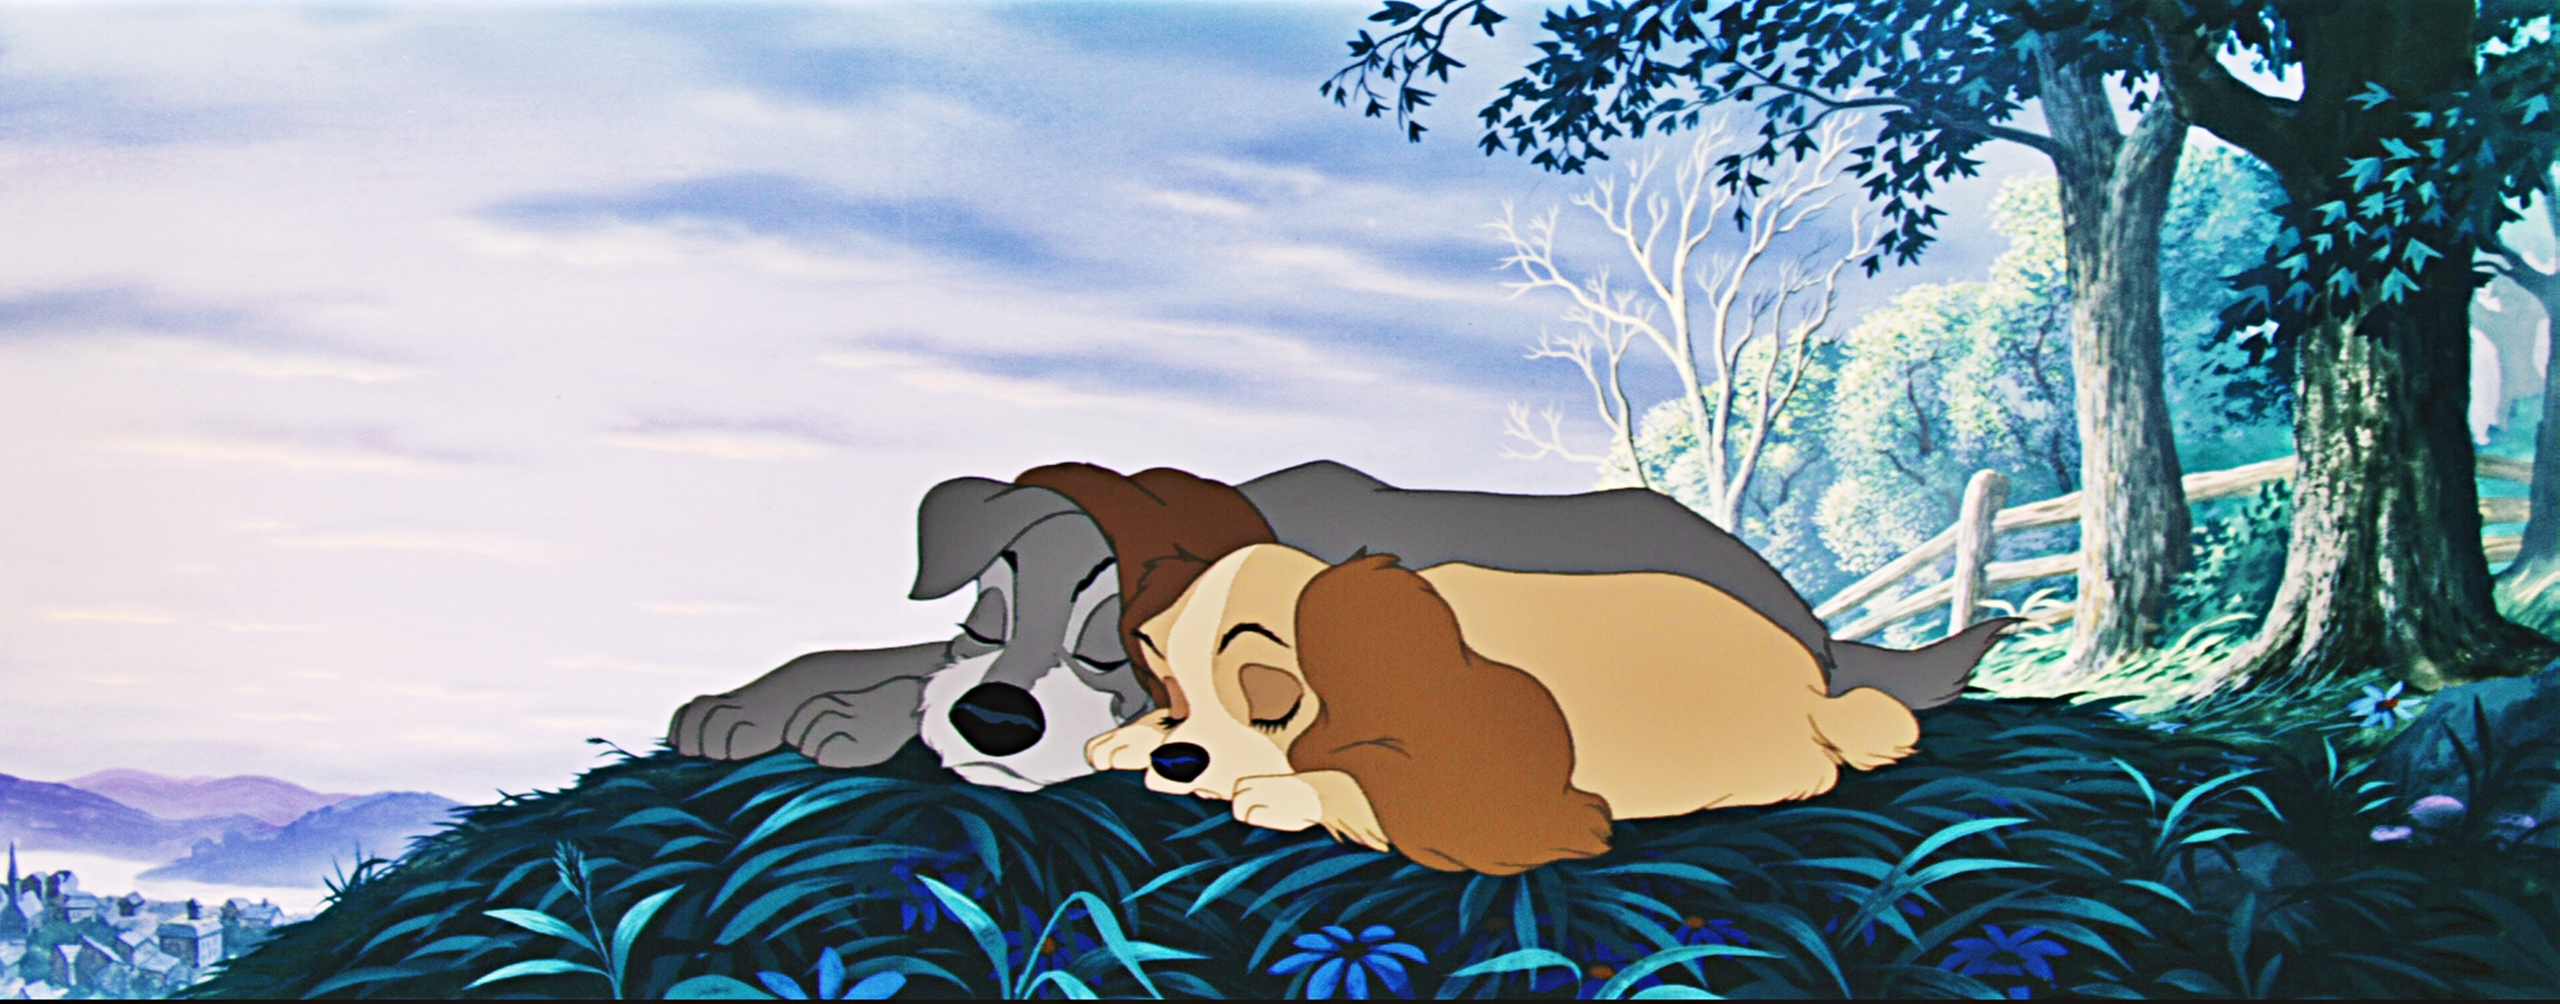 Lady And The Tramp Wallpaper